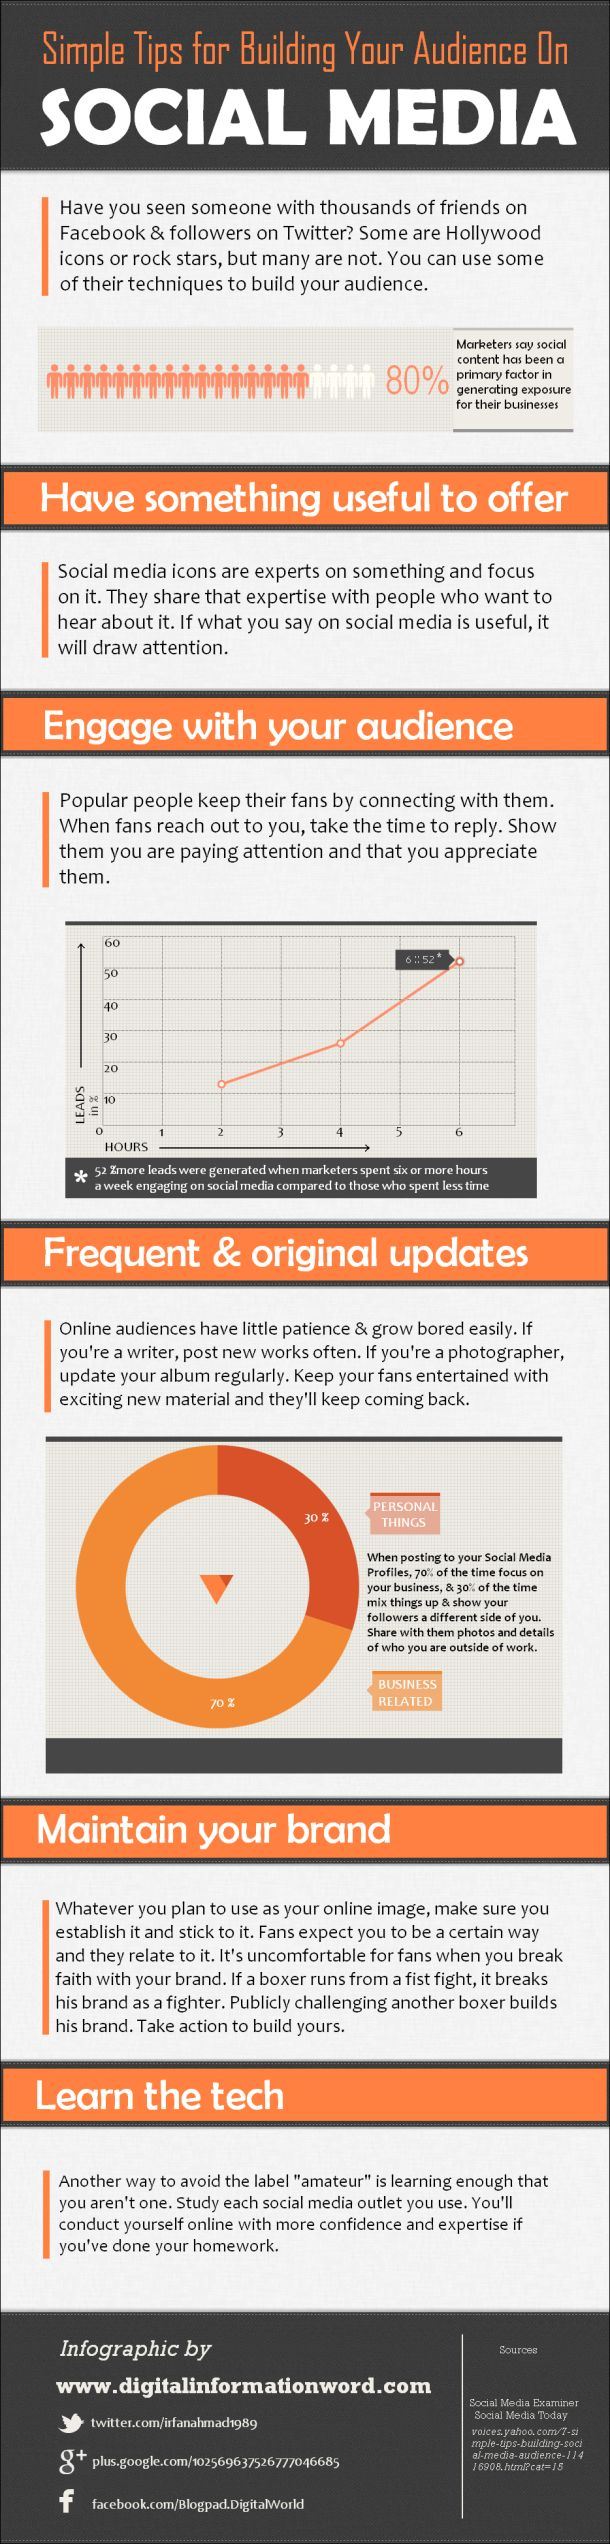 Simple Tips For Building Your Audience On Social Media[INFOGRAPHIC]